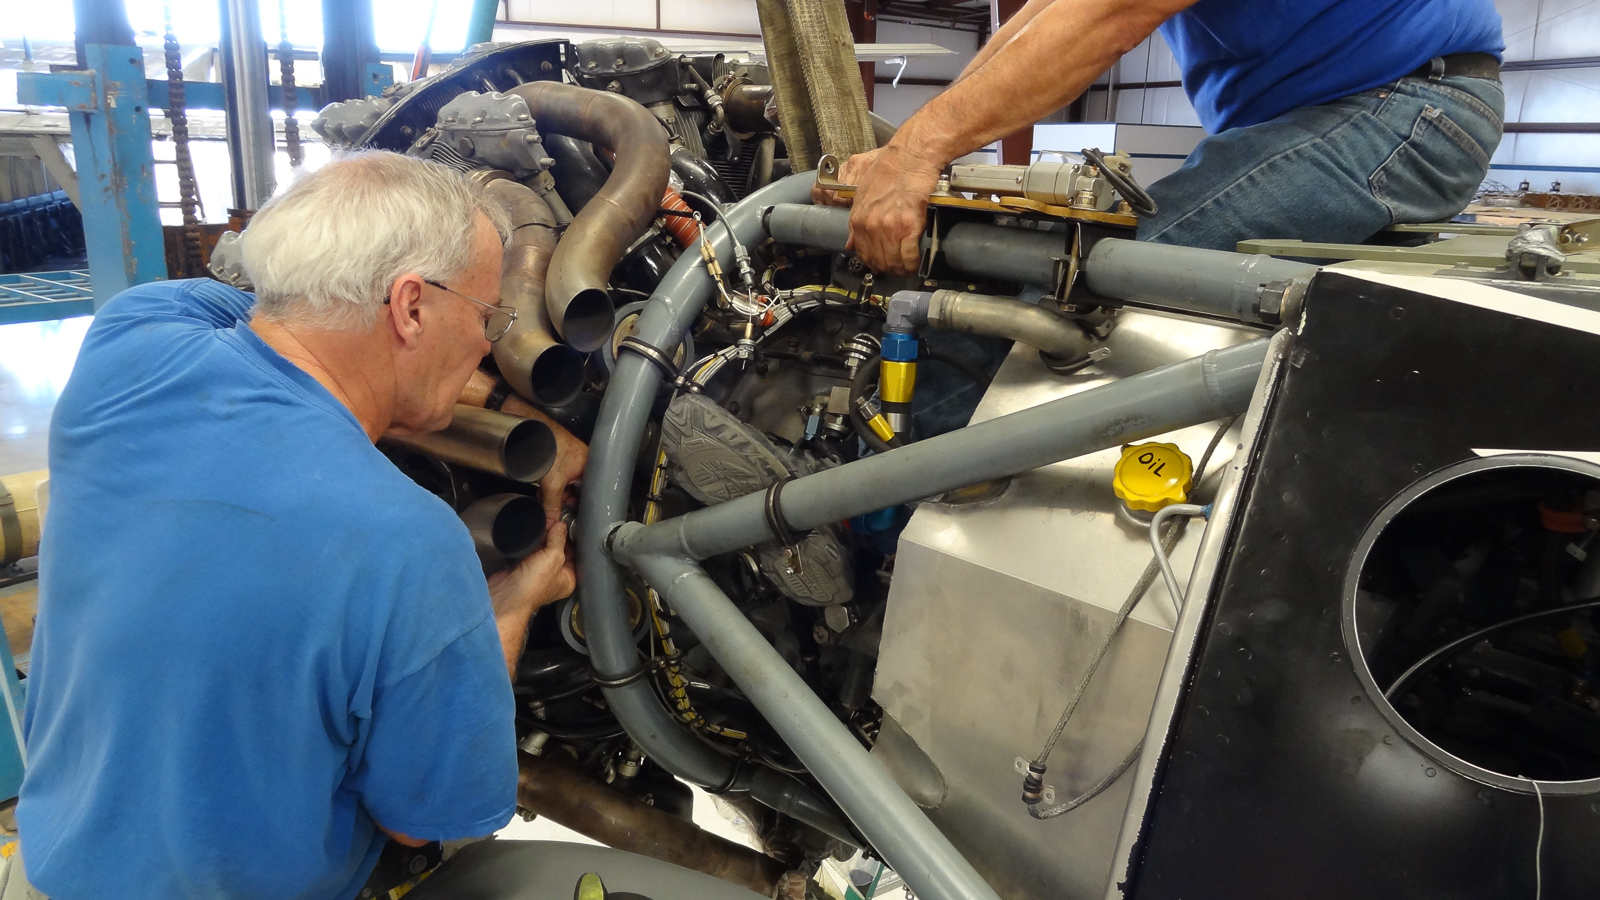 Installing the ASh-82 engine. (photo via GossHawk Unlimited)